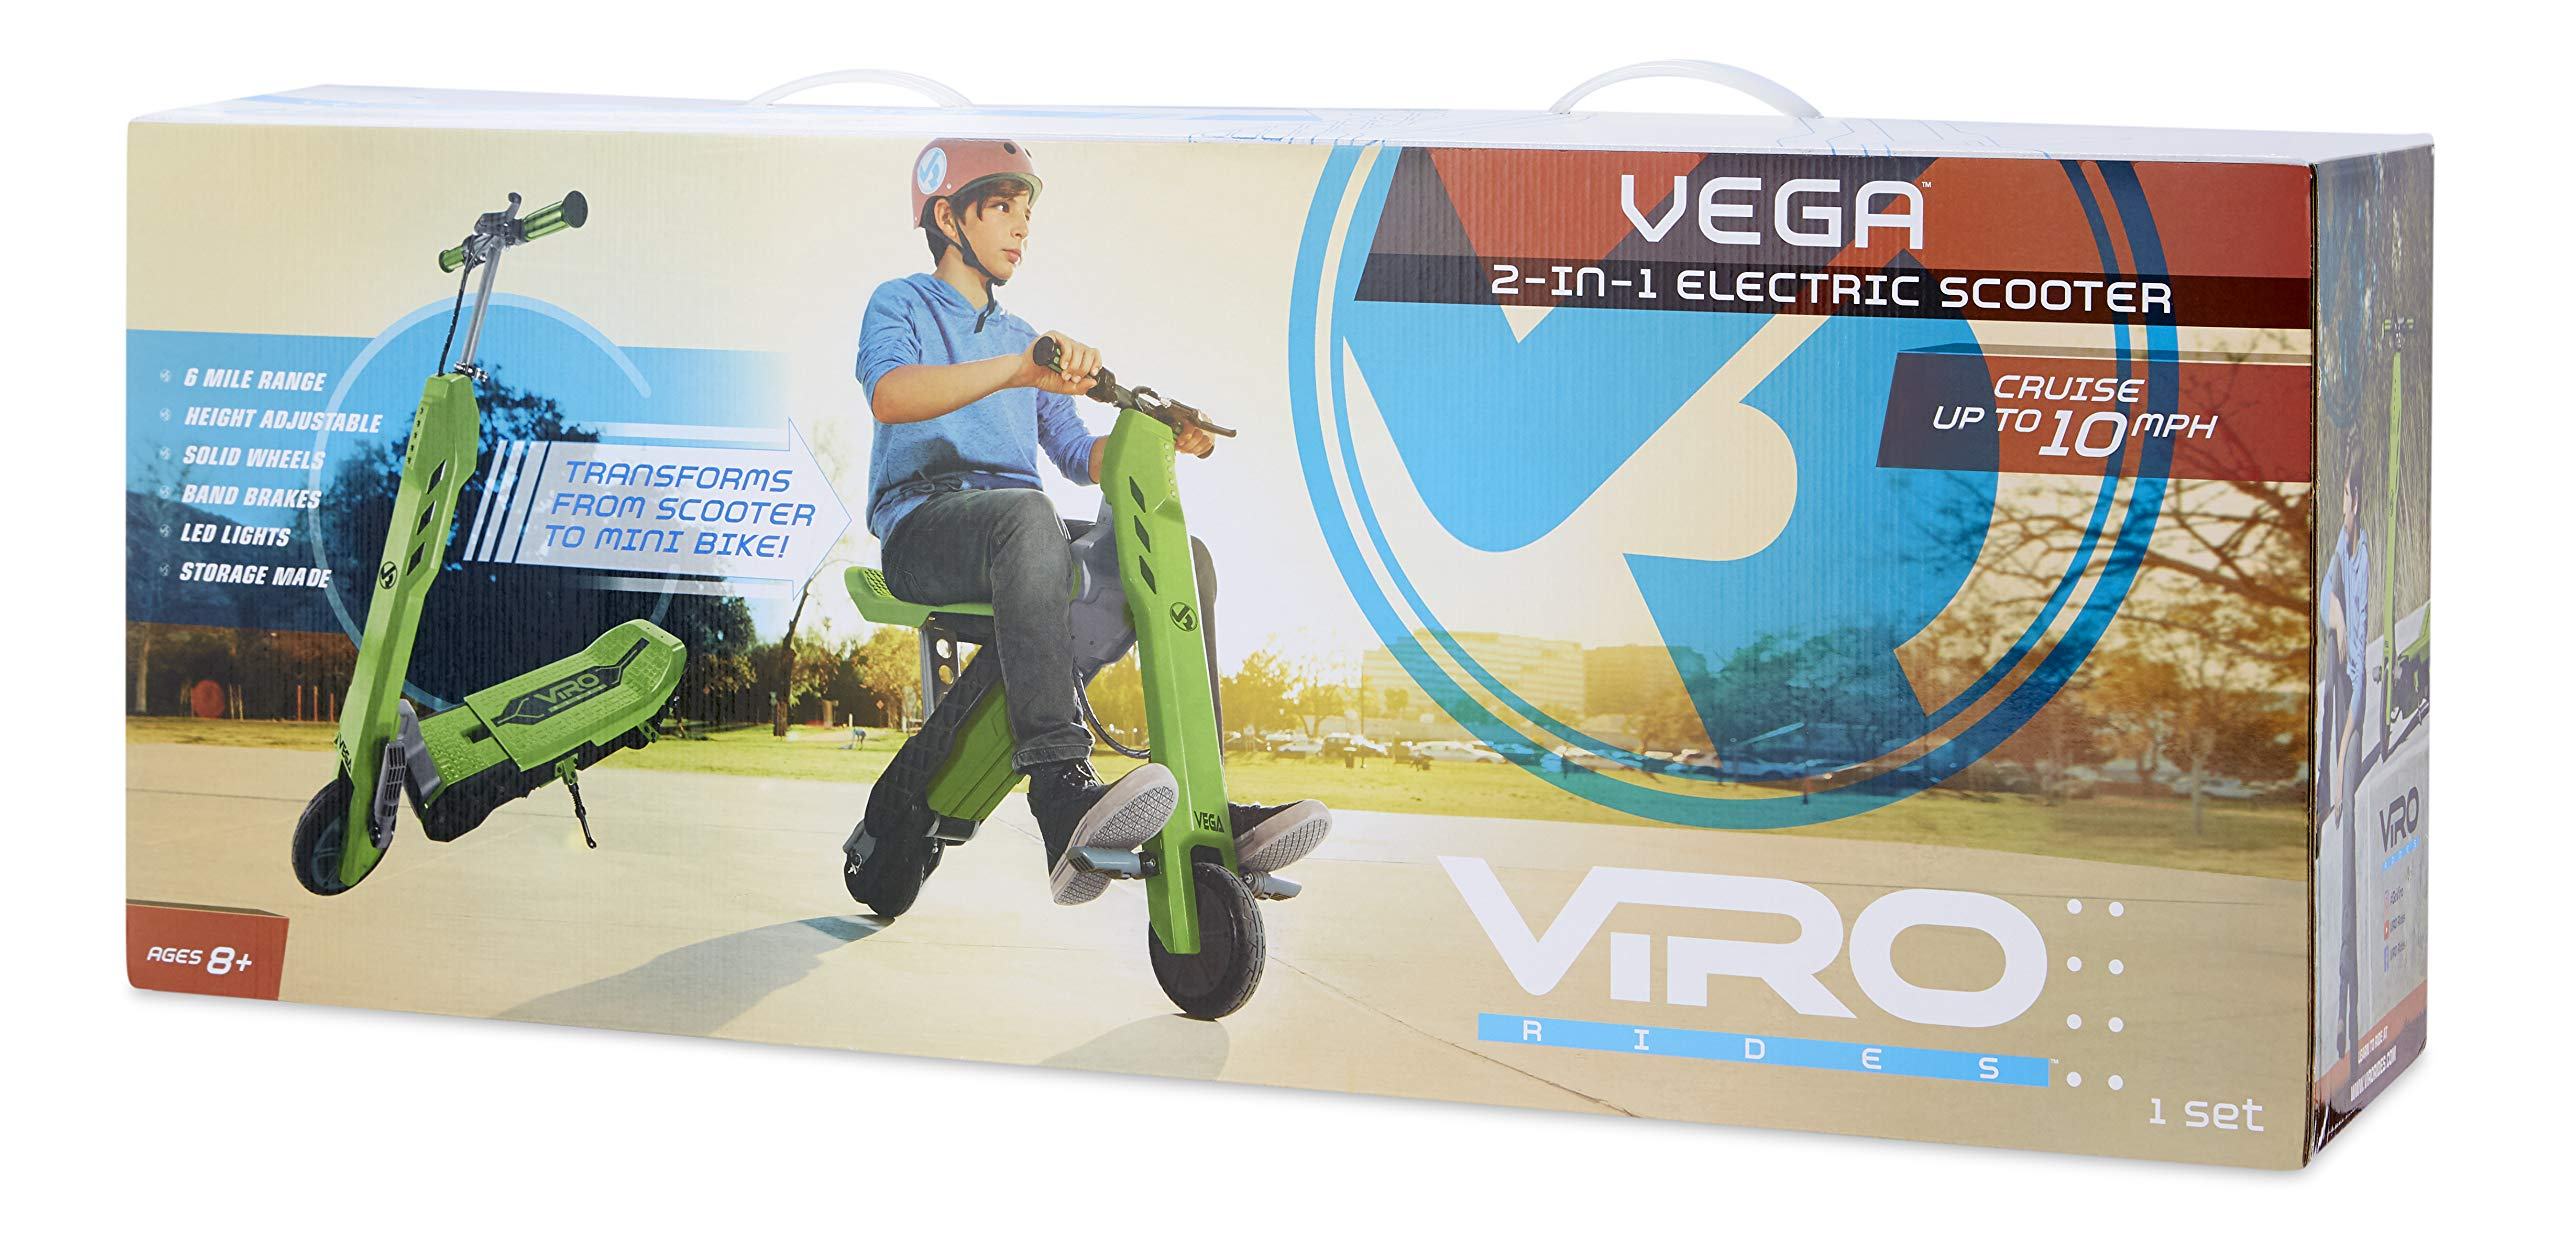 Viro Rides Vega Transforming 2-in-1 Electric Scooter and Mini Bike UL 2272 Certified by Viro Rides (Image #6)